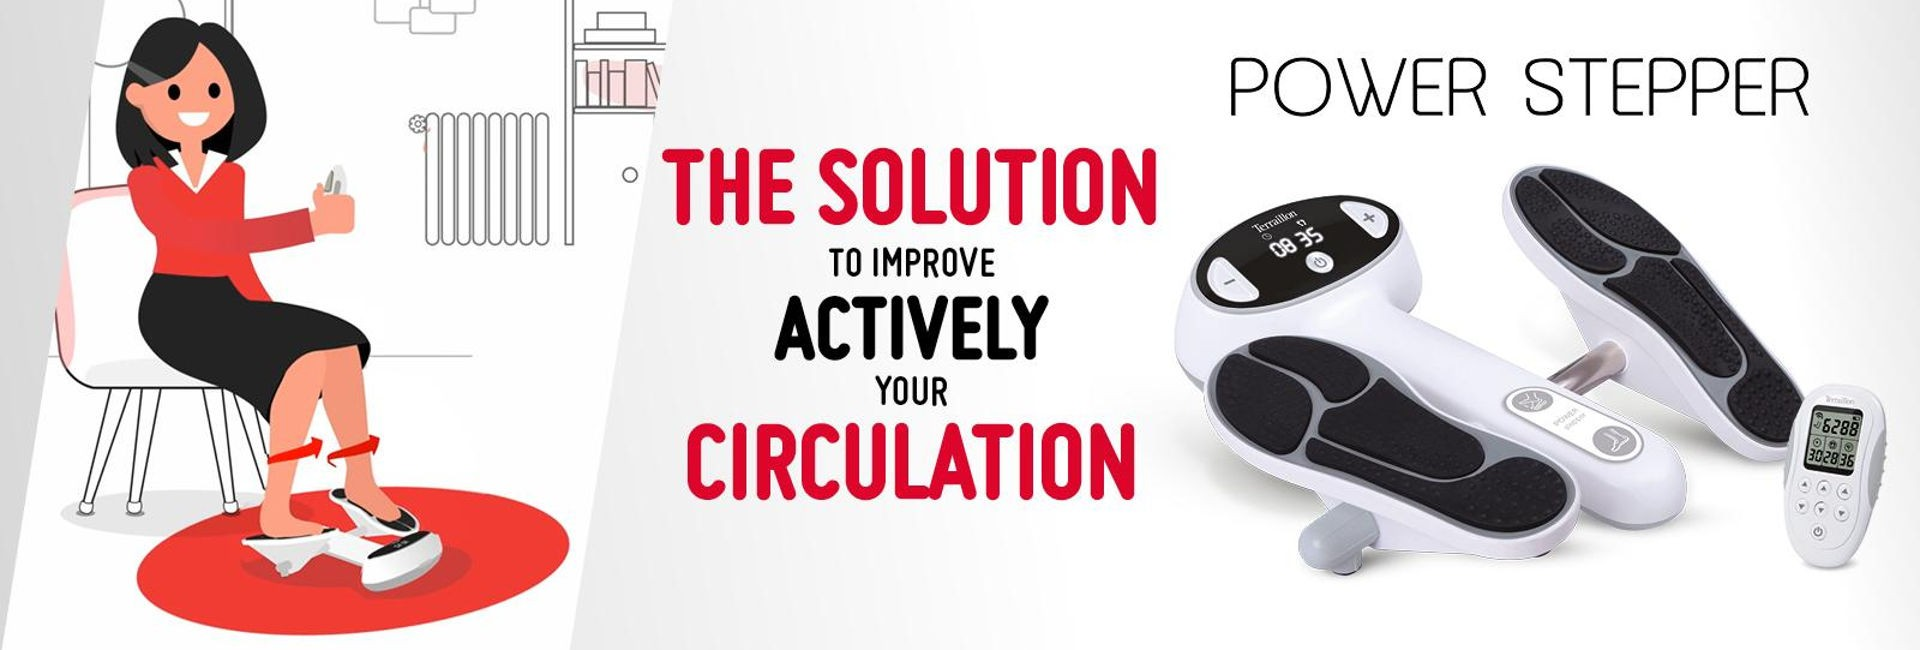 Power Stepper - The solution to improve actively your circulation